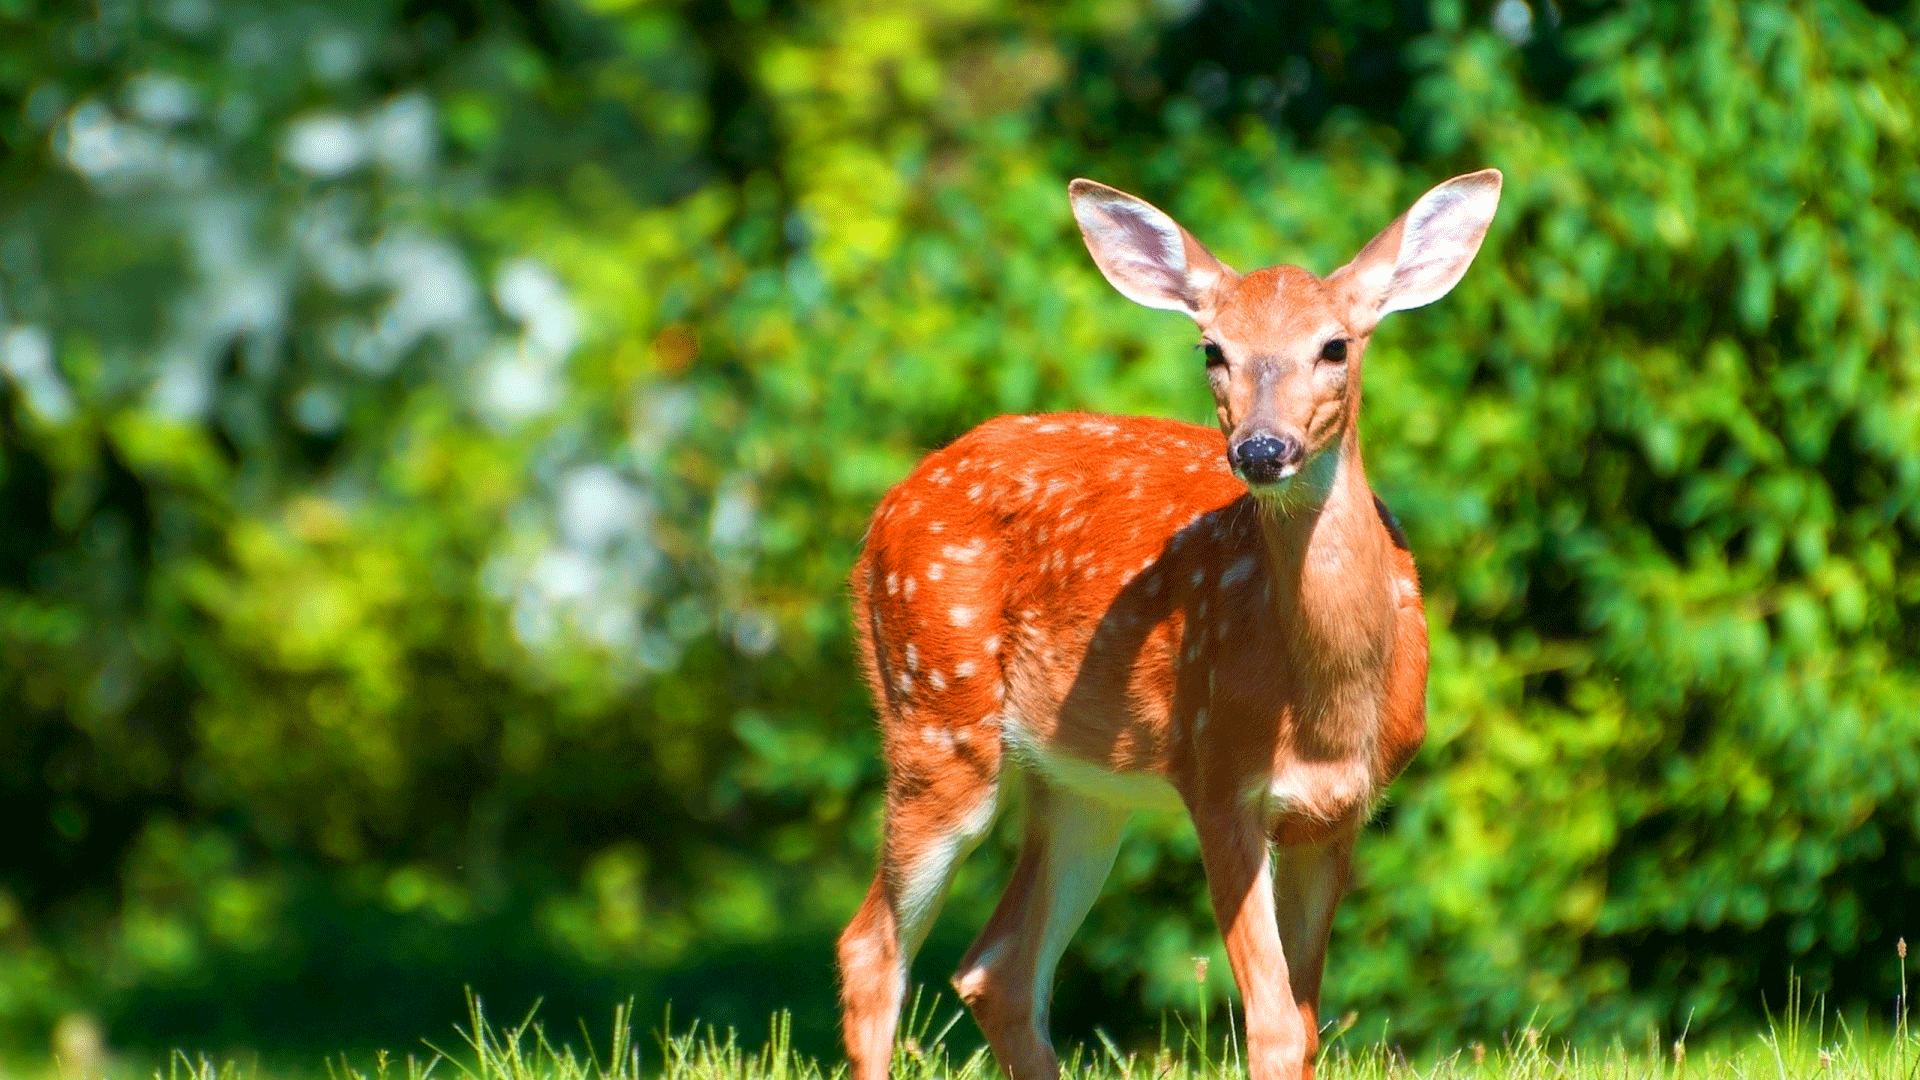 deer-hd-nature-images